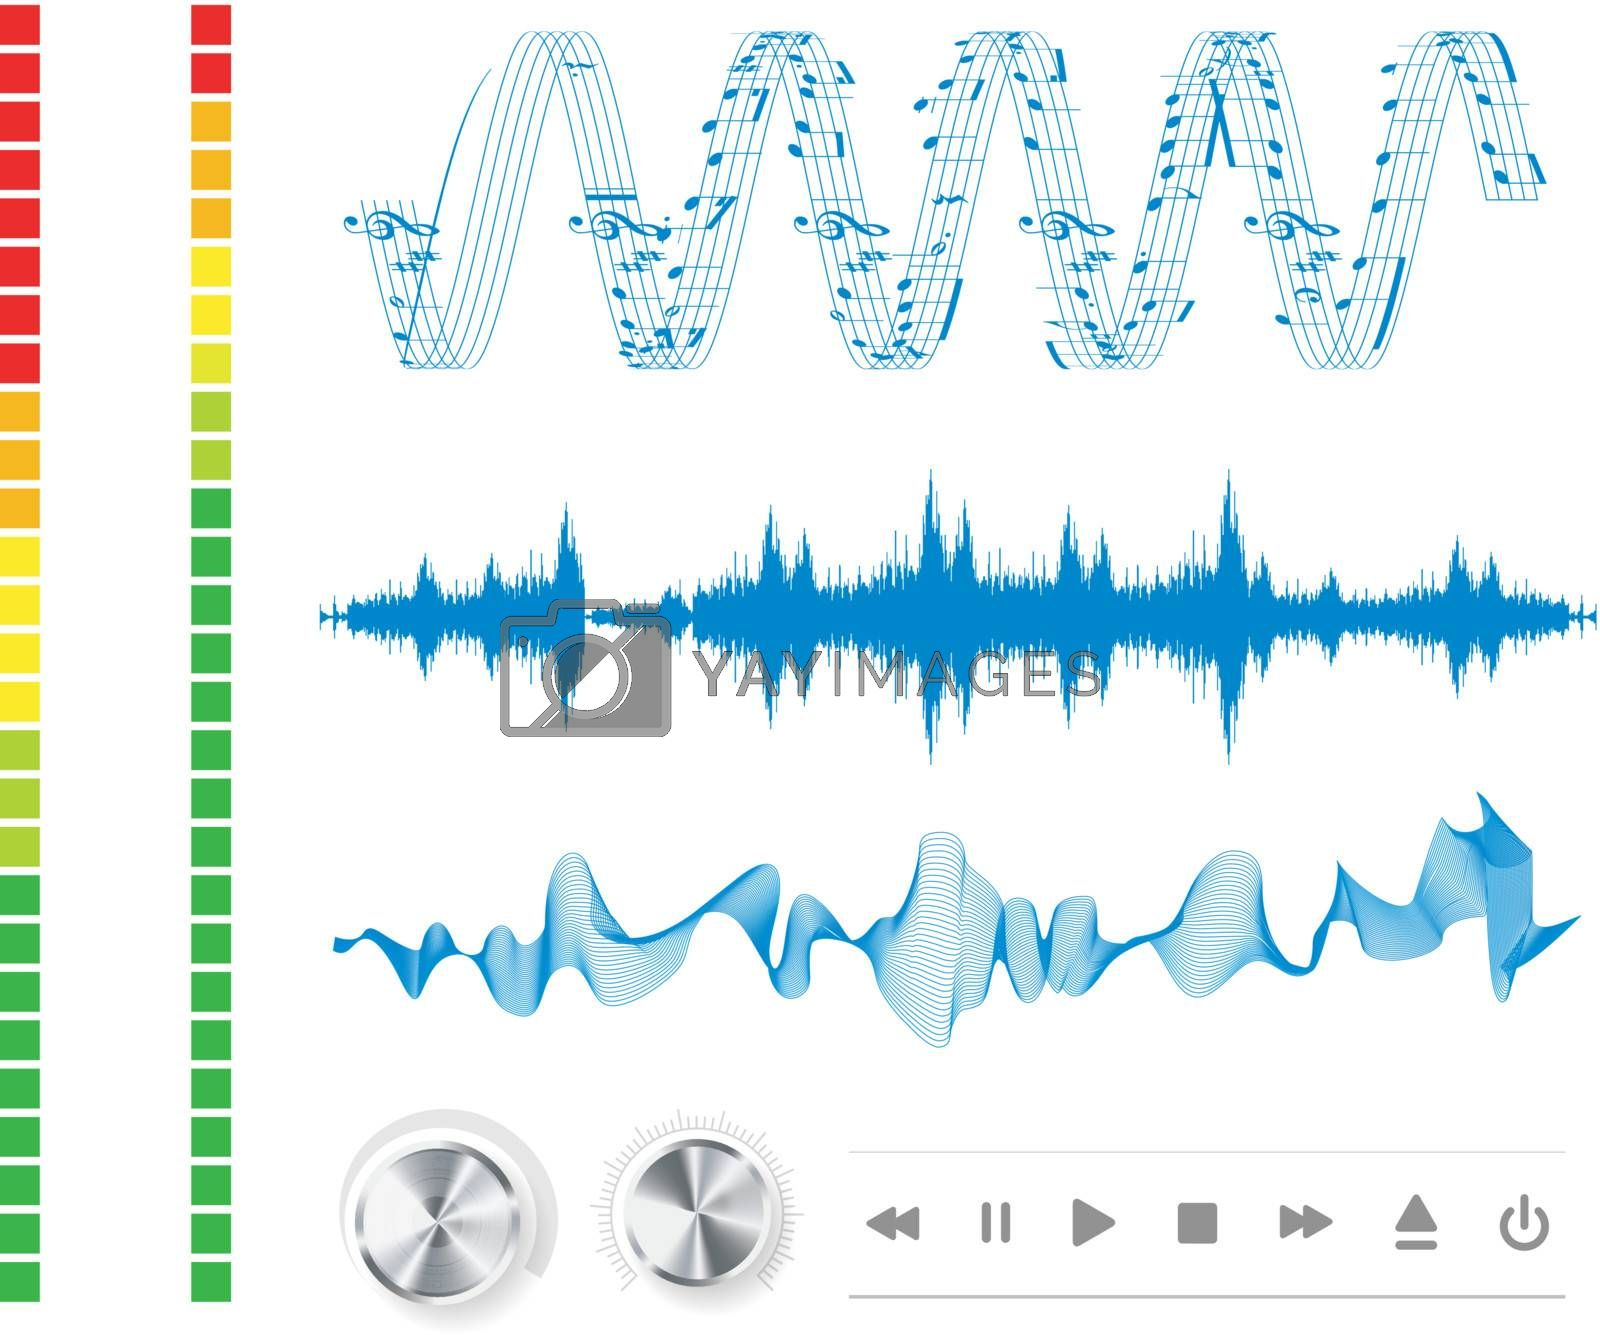 Notes, buttons and sound waves. Music background.